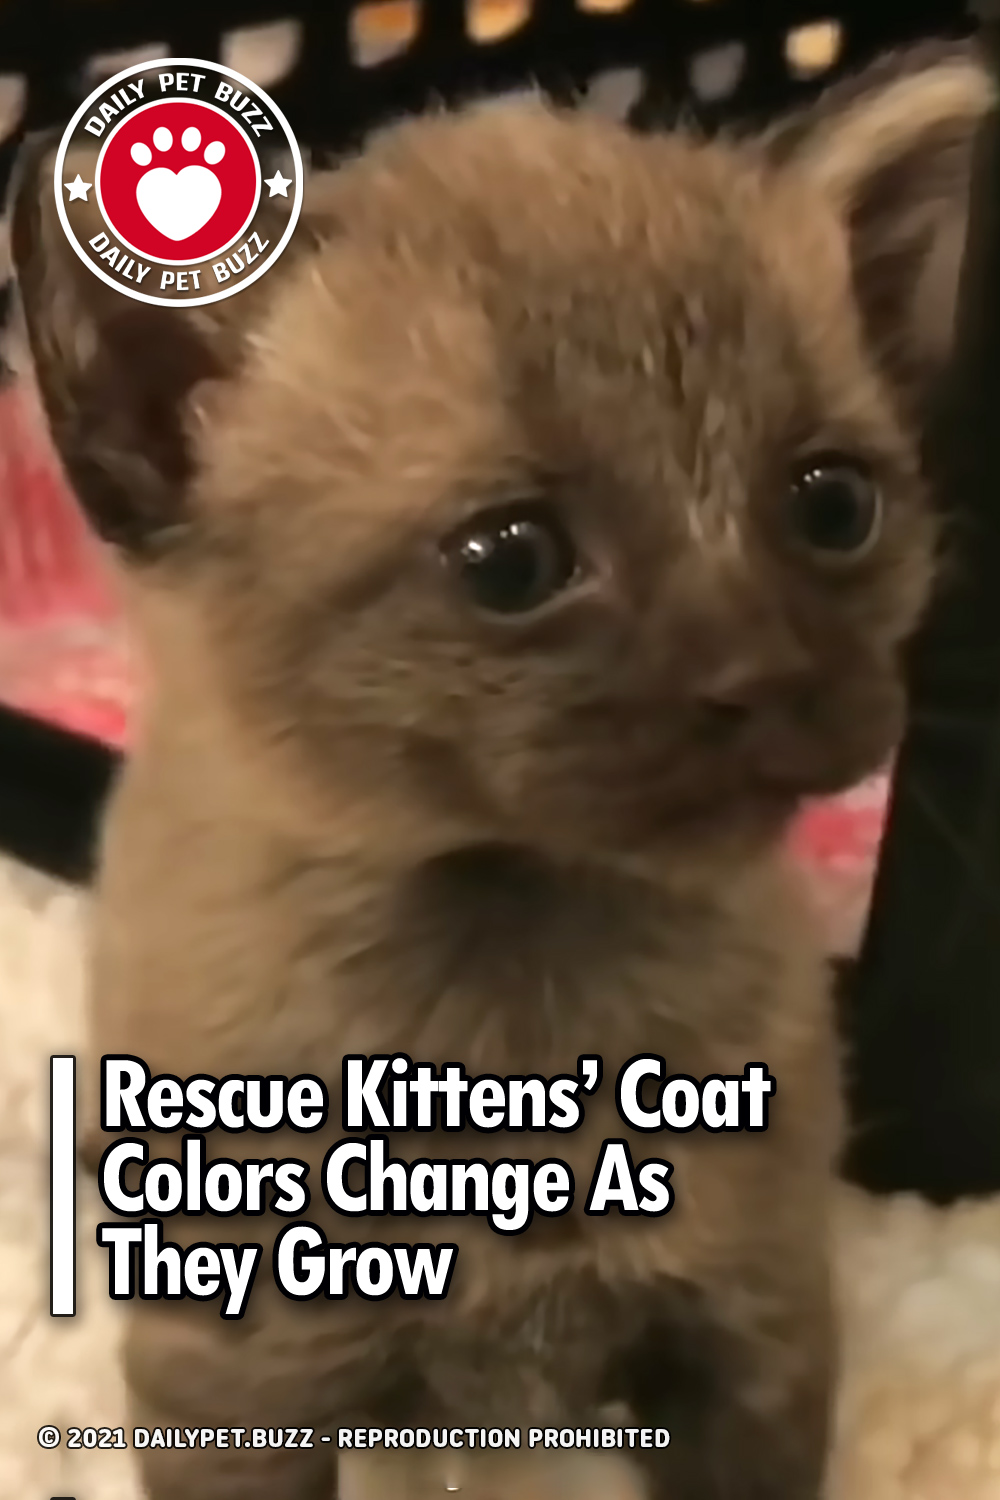 Rescue Kittens' Coat Colors Change As They Grow